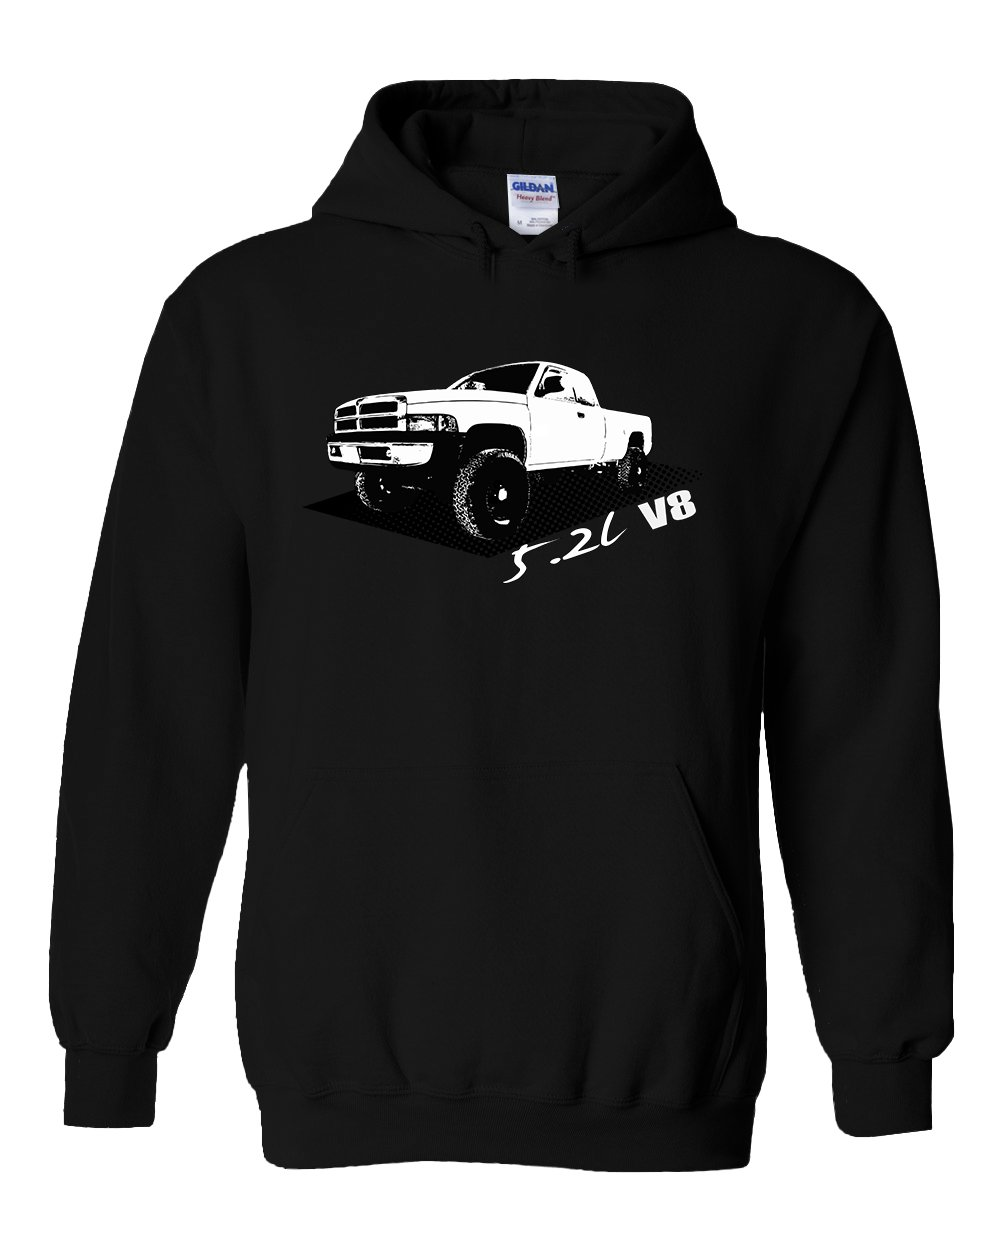 2nd Gen Dodge Ram Hoodie | Dodge Sweatshirt | Aggressive Thread Truck Apparel